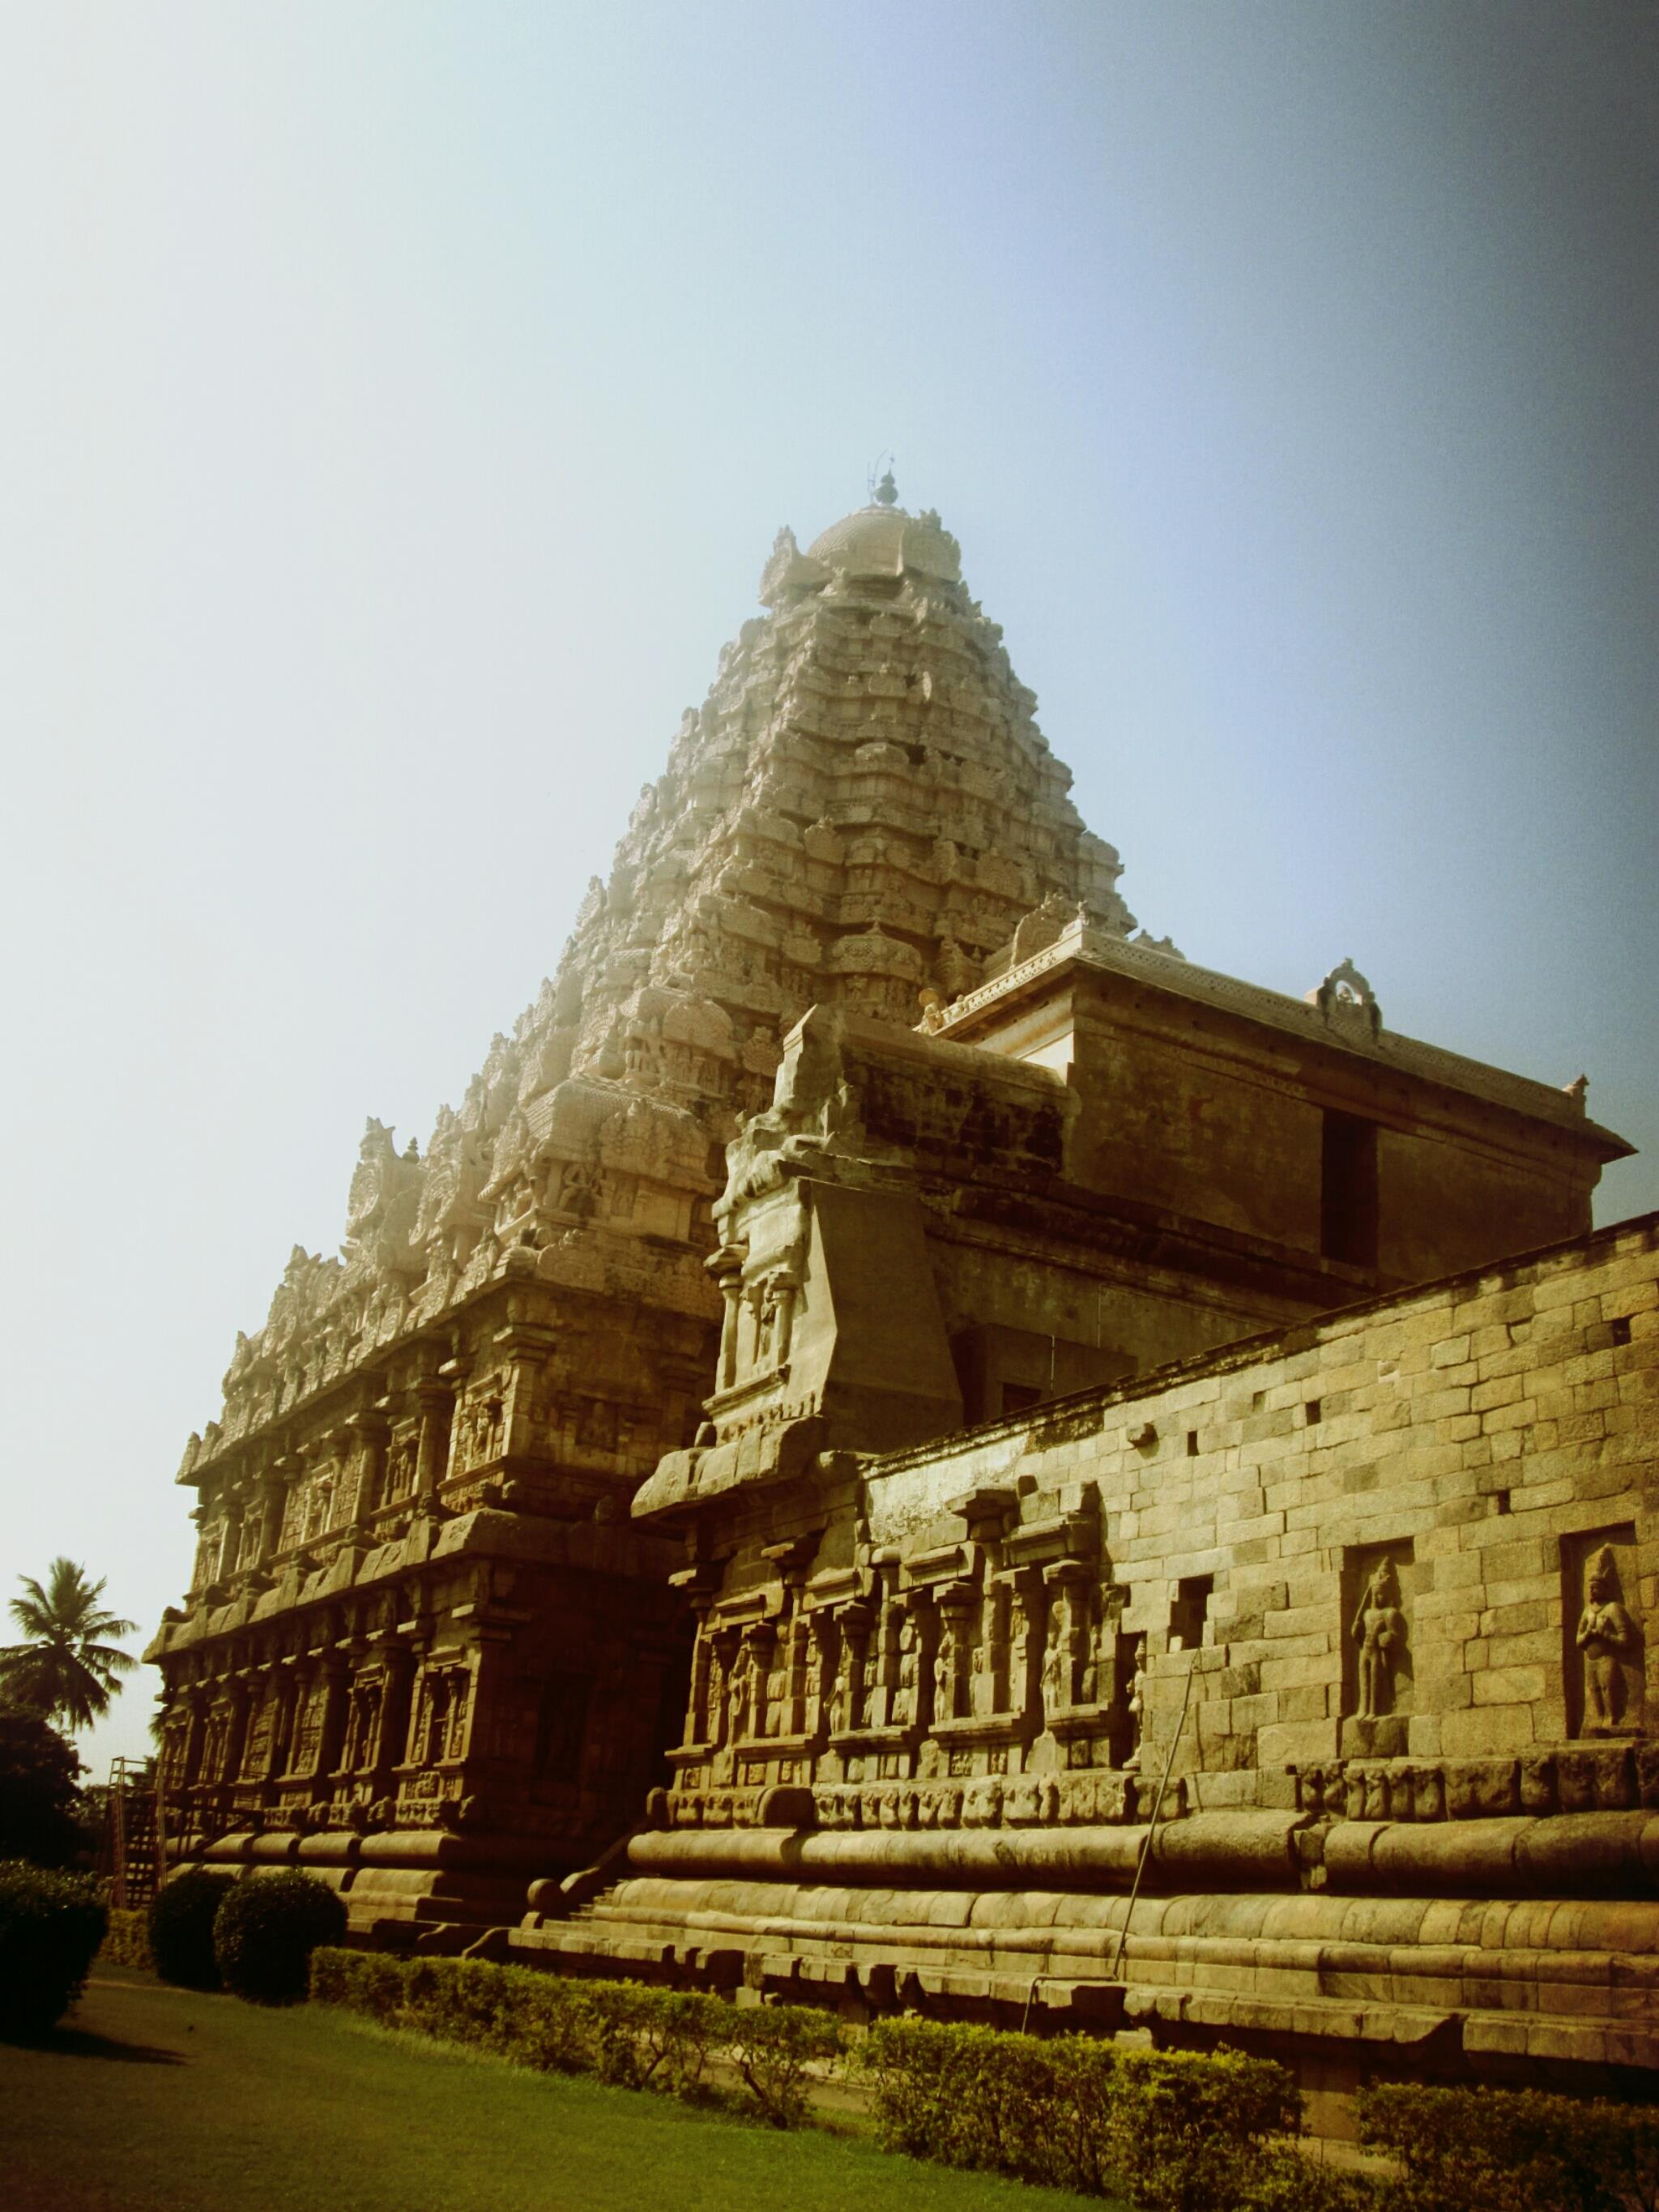 Gangaikonda cholapuram: Photo essaay on an ancient and amazing temple.